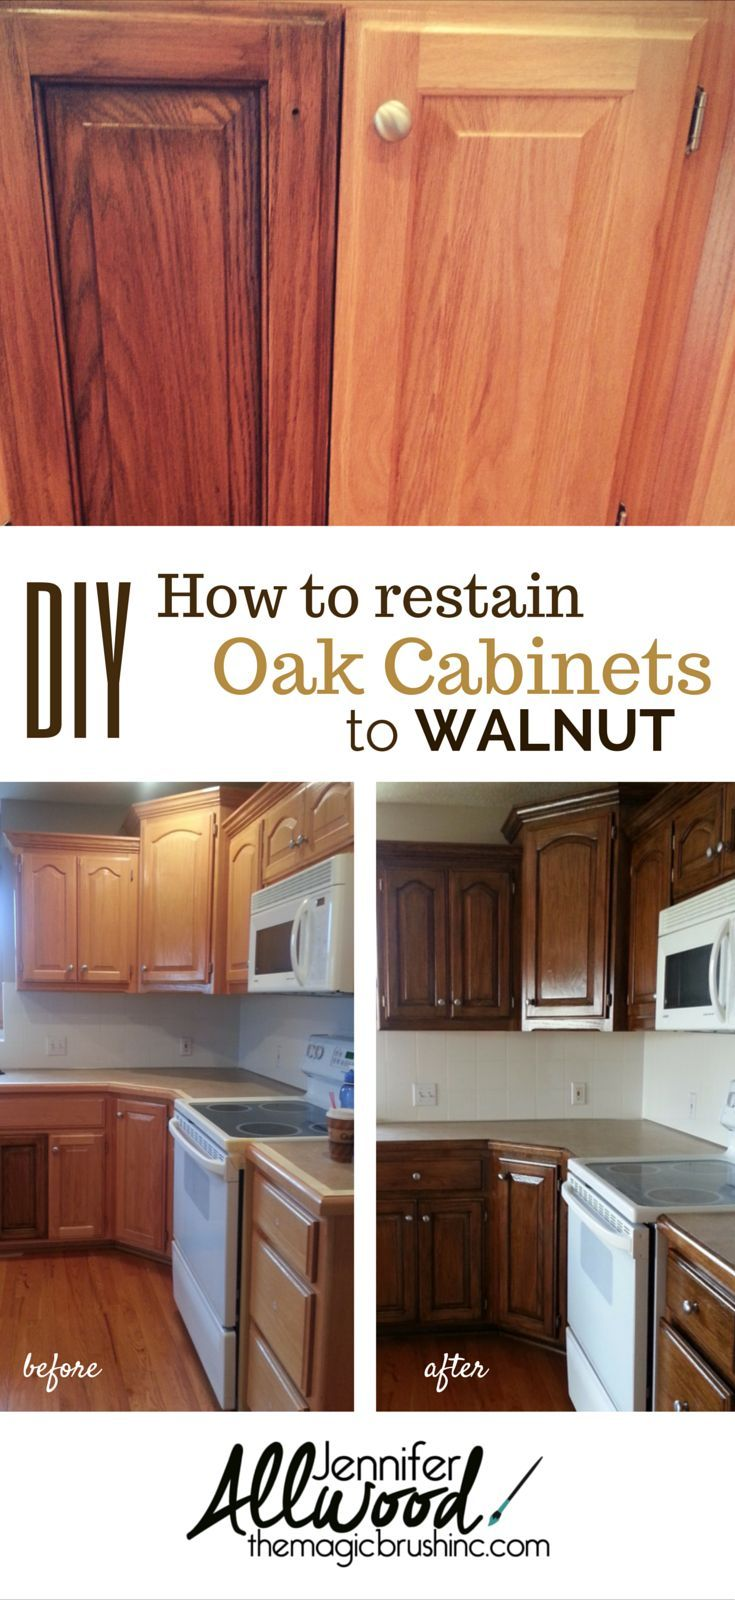 Bon How To Change Your Tired, Oak Kitchen Cabinets To A Dark Walnut Stain.  TheMagicBrushinc.comu0027s Video Has Step By Step Instructions, Products And  Trade ...